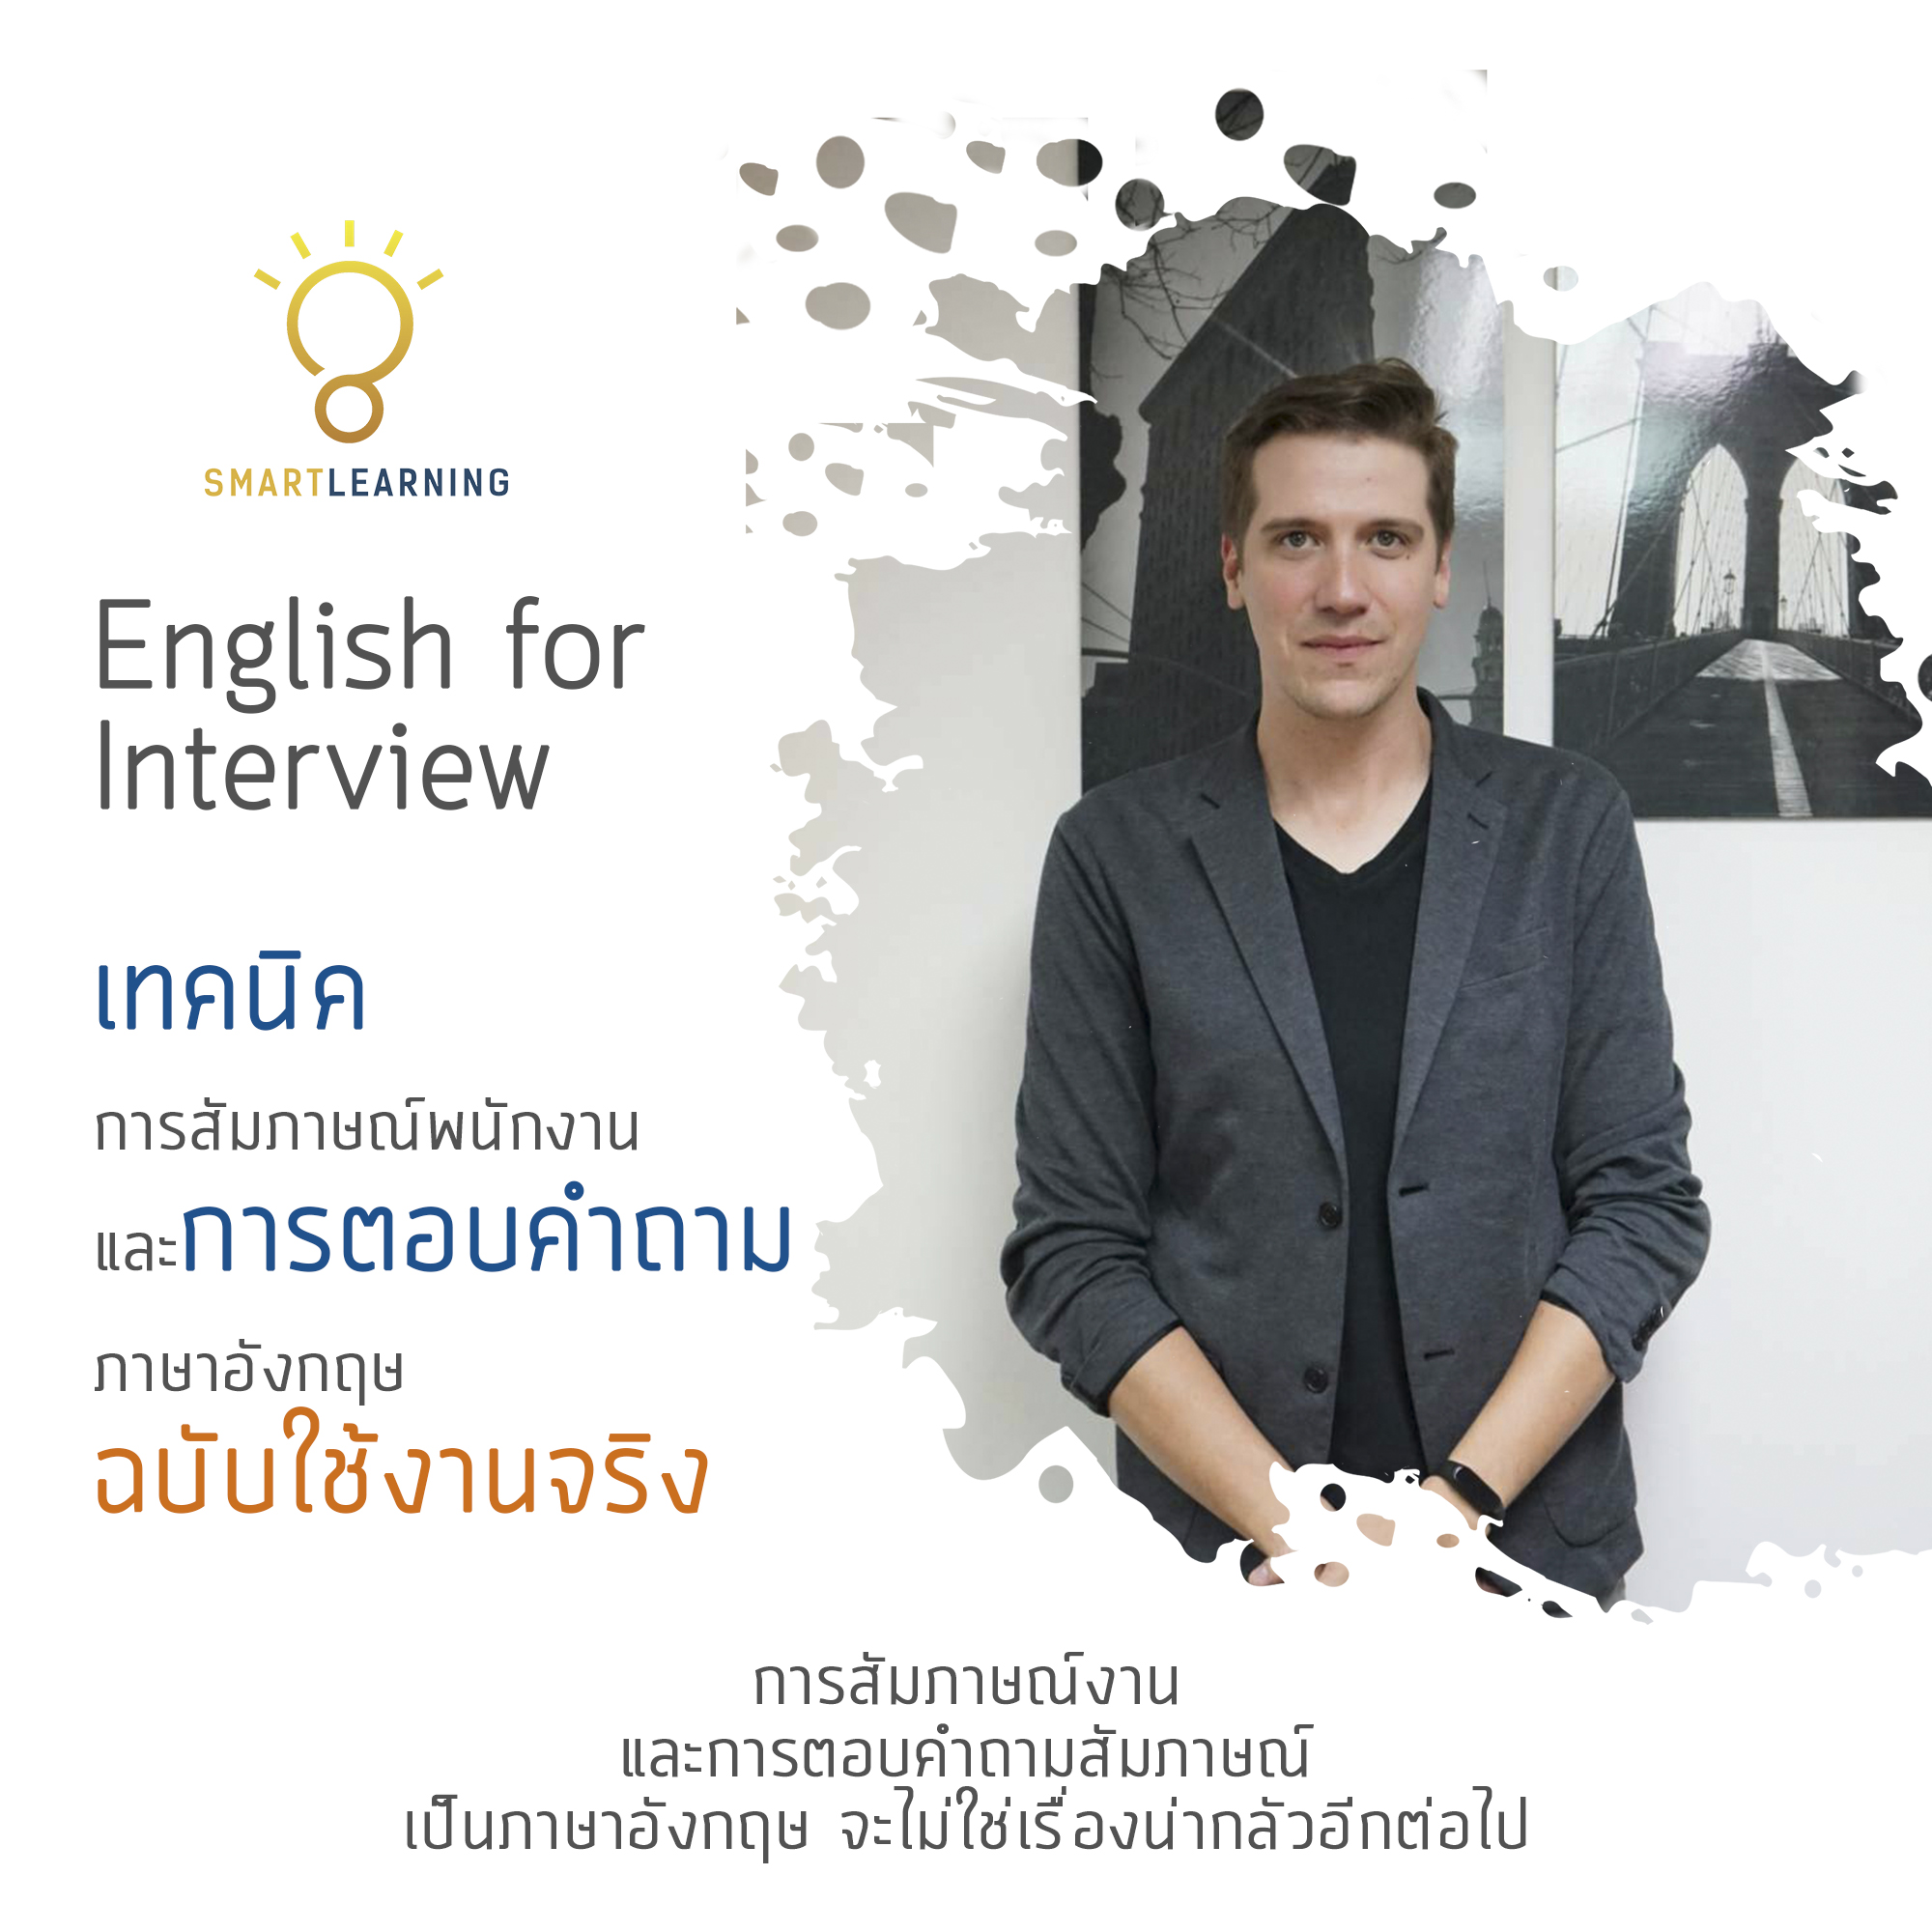 English for Interview